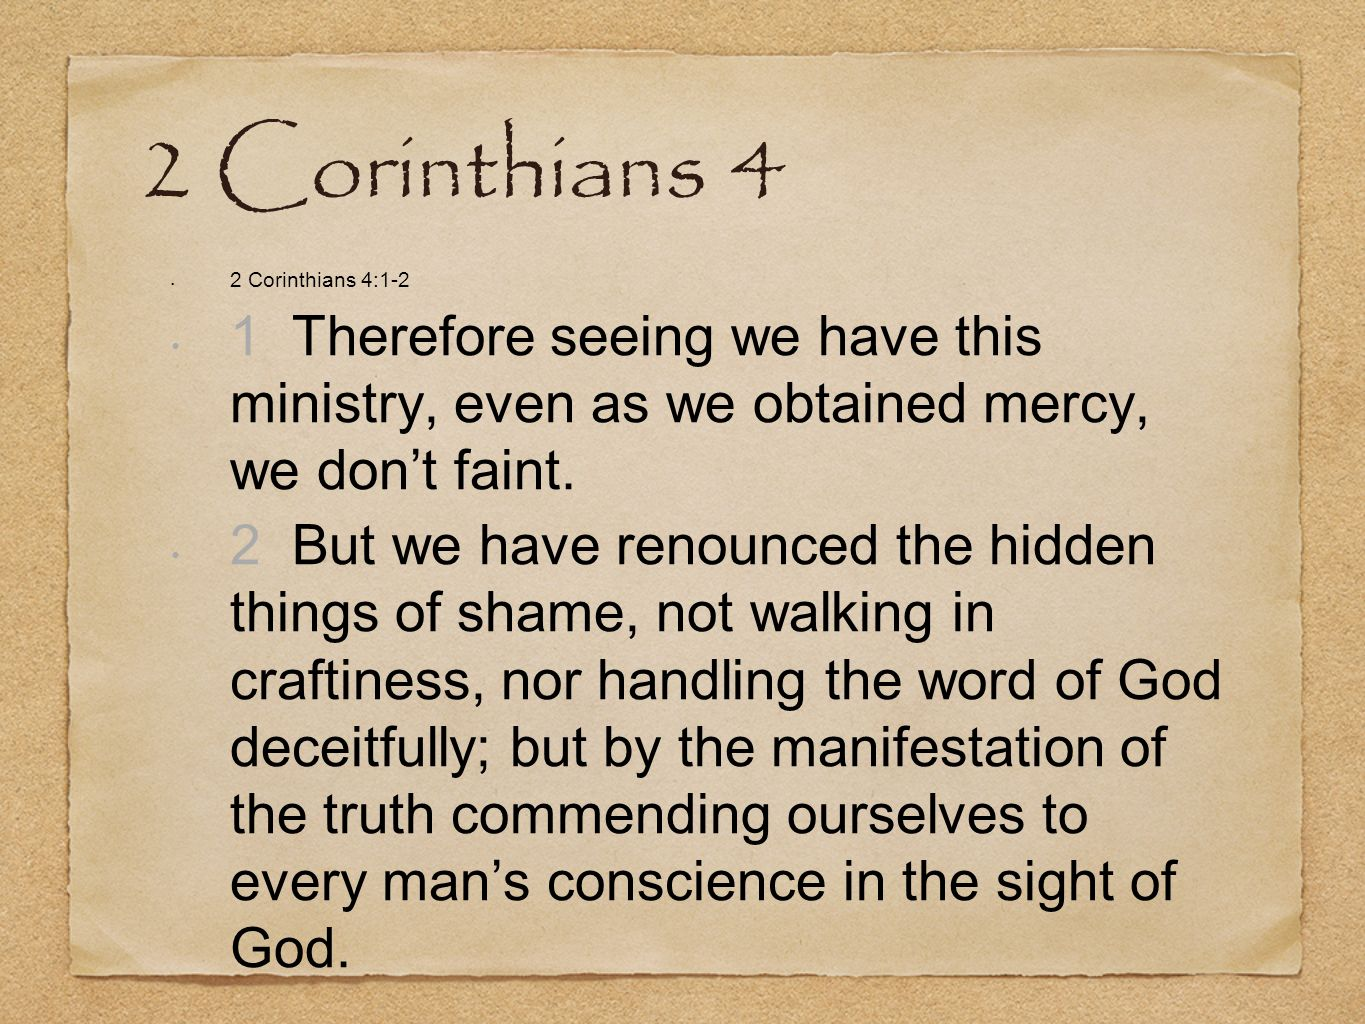 2 Corinthians 4 2 Corinthians 4:1-2 1 Therefore seeing we have this ministry, even as we obtained mercy, we dont faint. 2 But we have renounced the hi